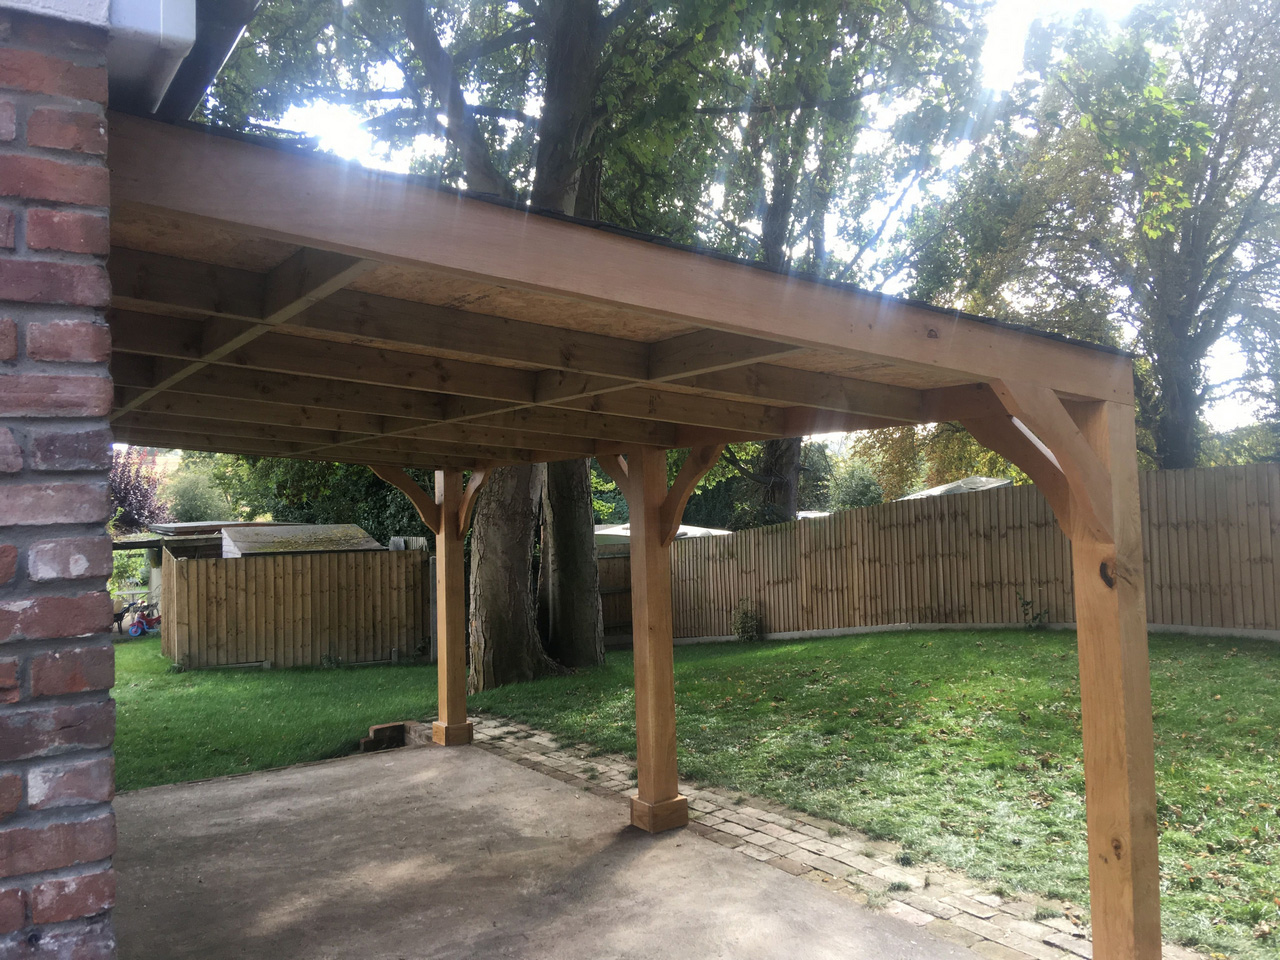 Building a Carport-metal buildings for sale-carports near me